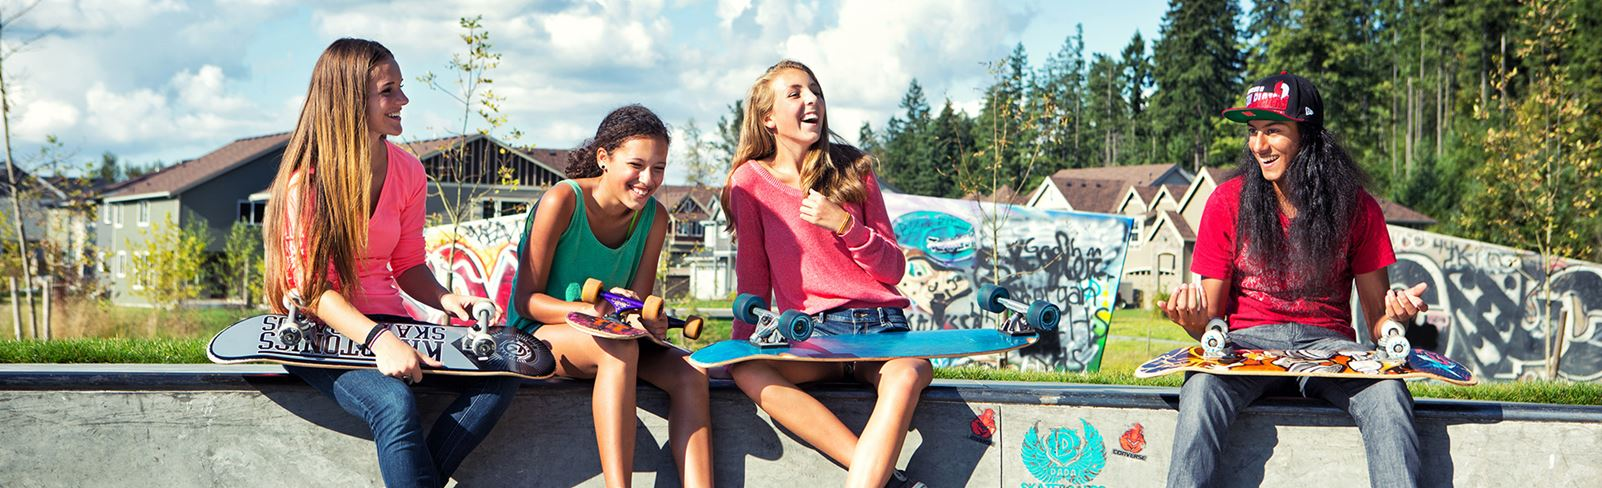 tehaleh-teens-sitting-at-skate-park.jpg (1)